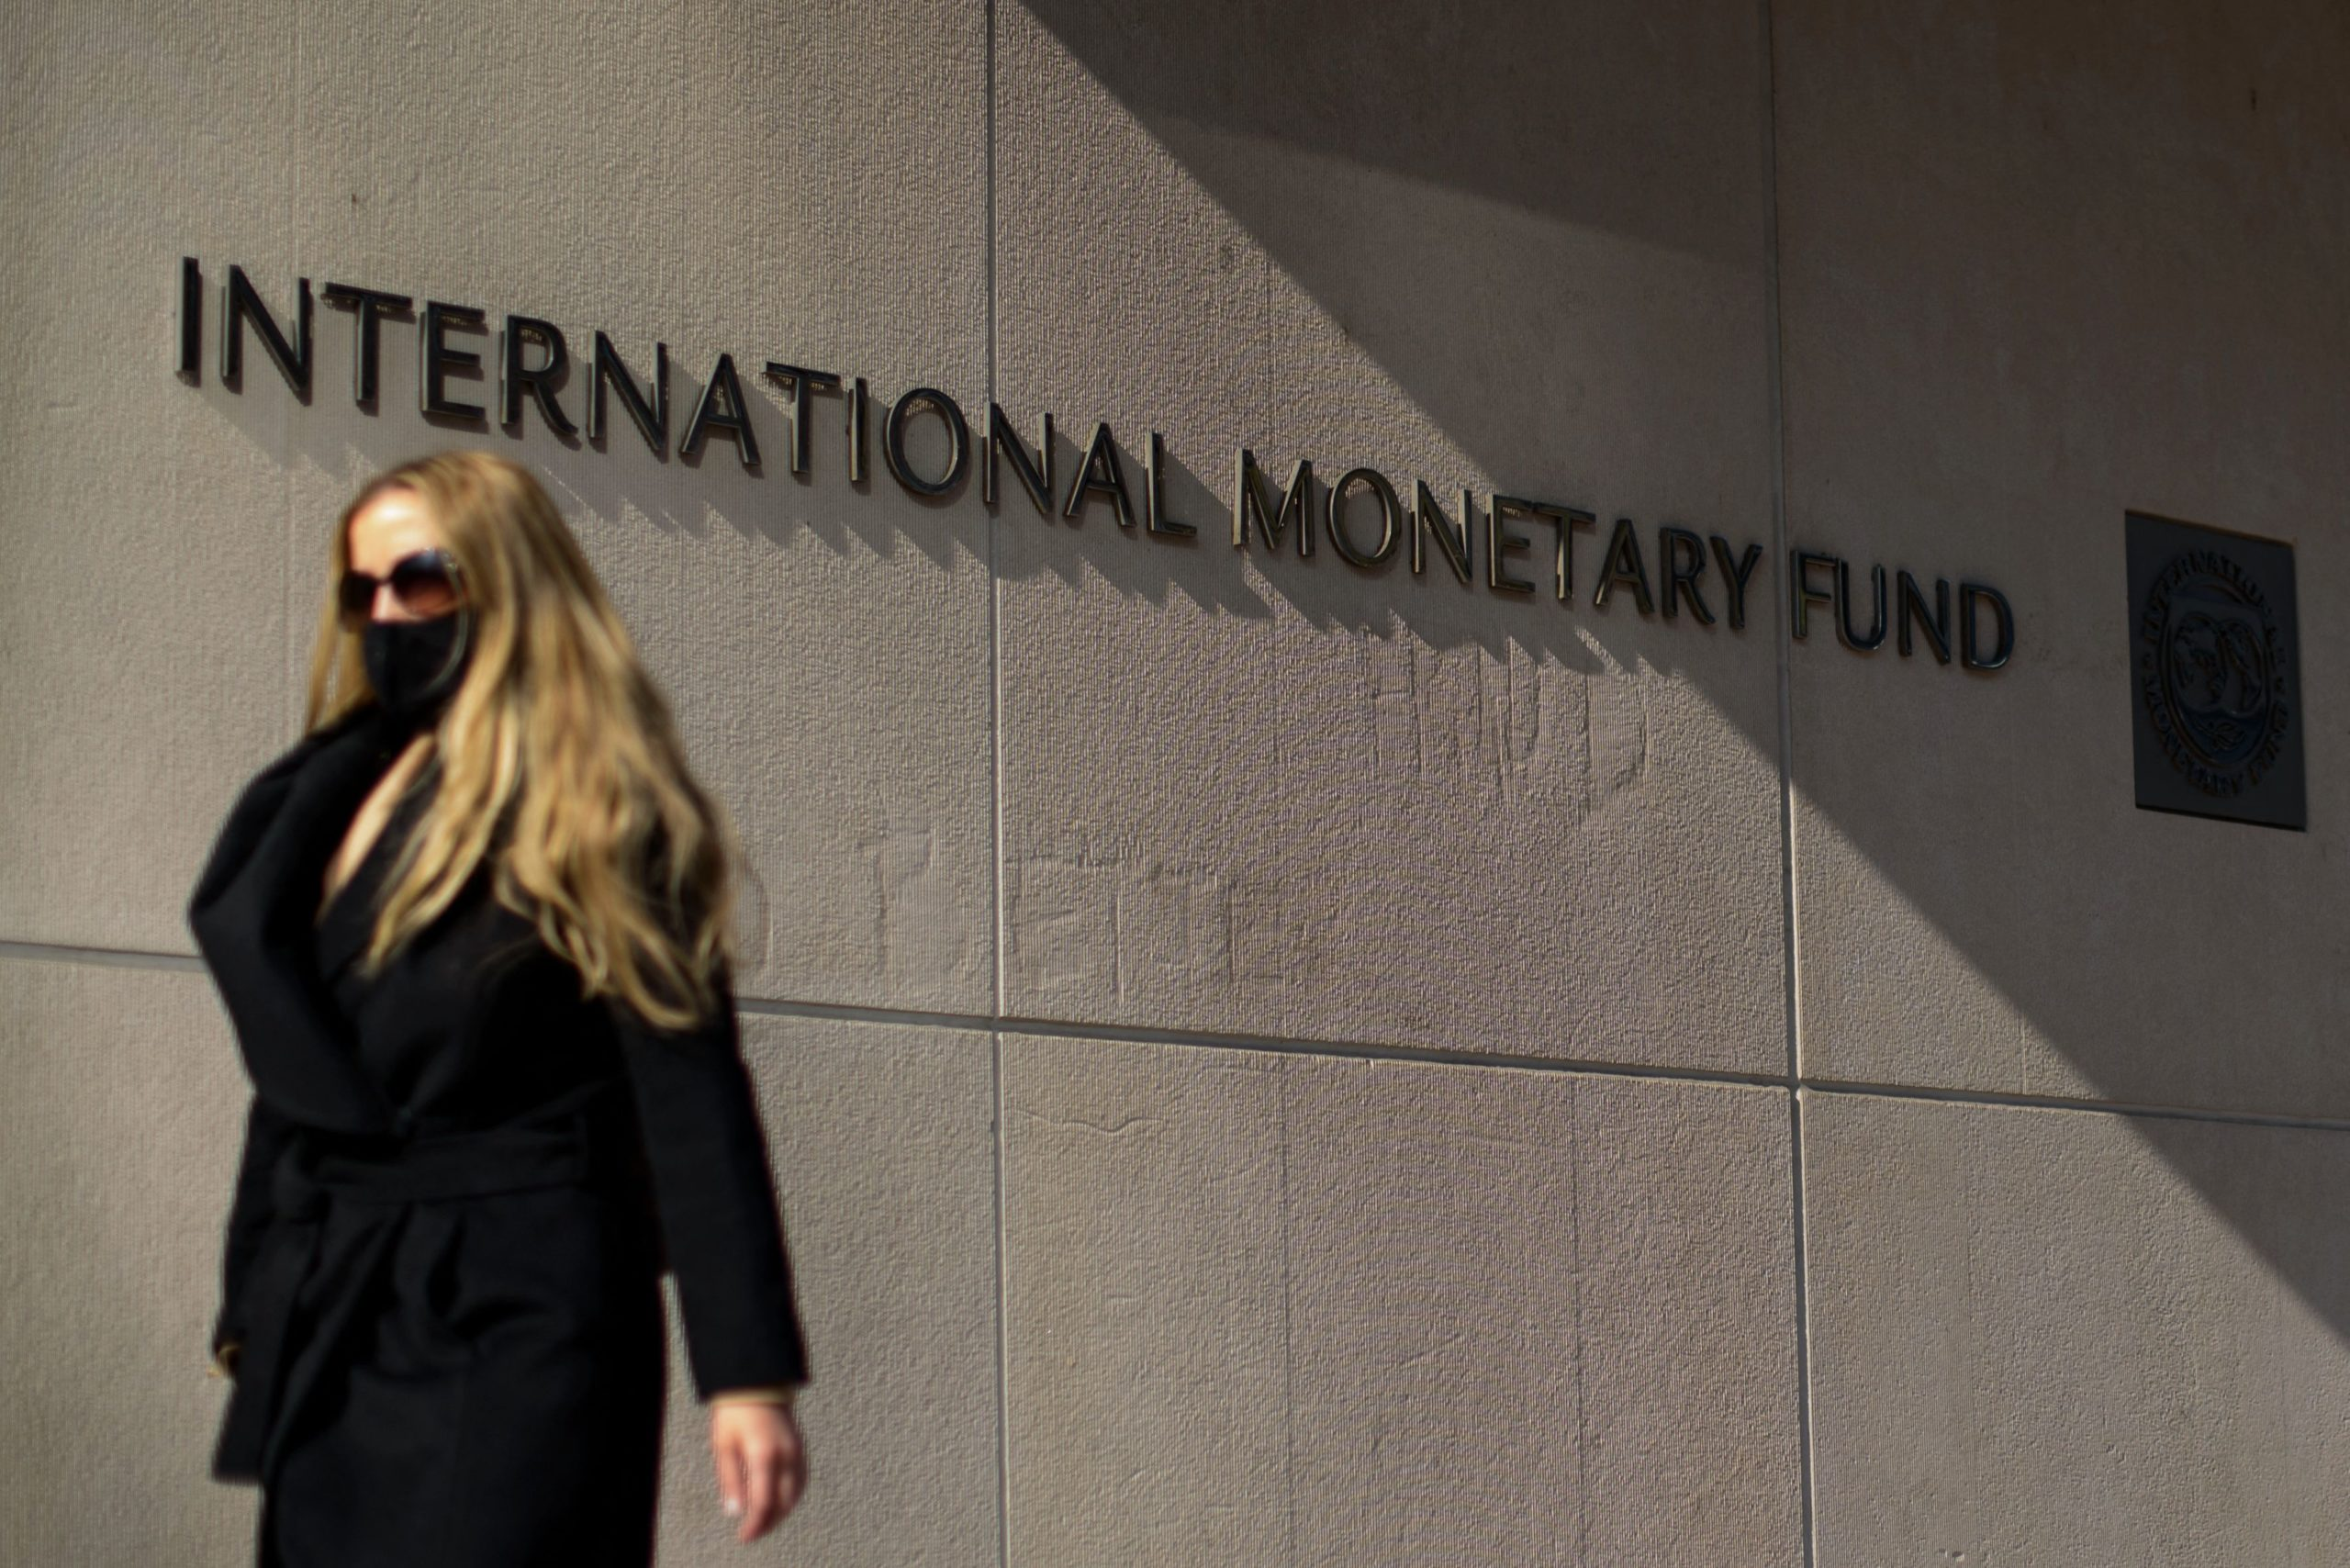 A woman walks past an International Monetary Fund headquarters building in Washington, D.C. on Monday. (Mandel Ngan/AFP via Getty Images)